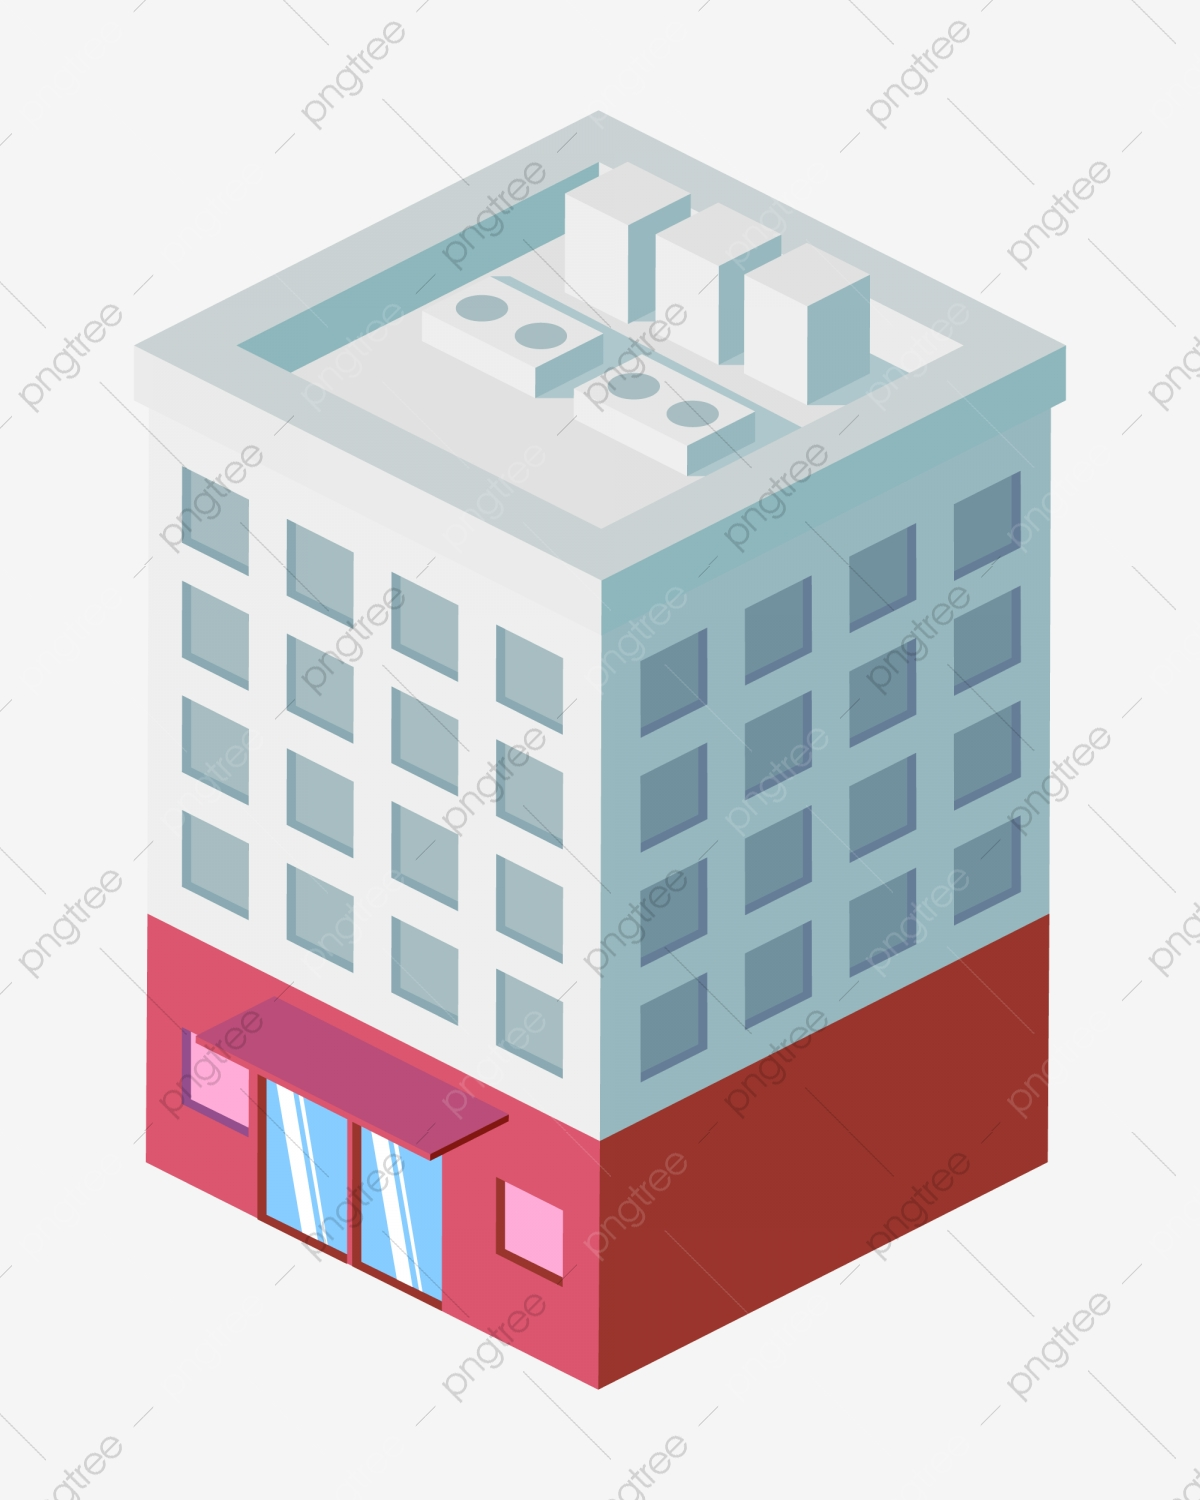 Office Building Png Images Vector And Psd Files Free Download On Pngtree